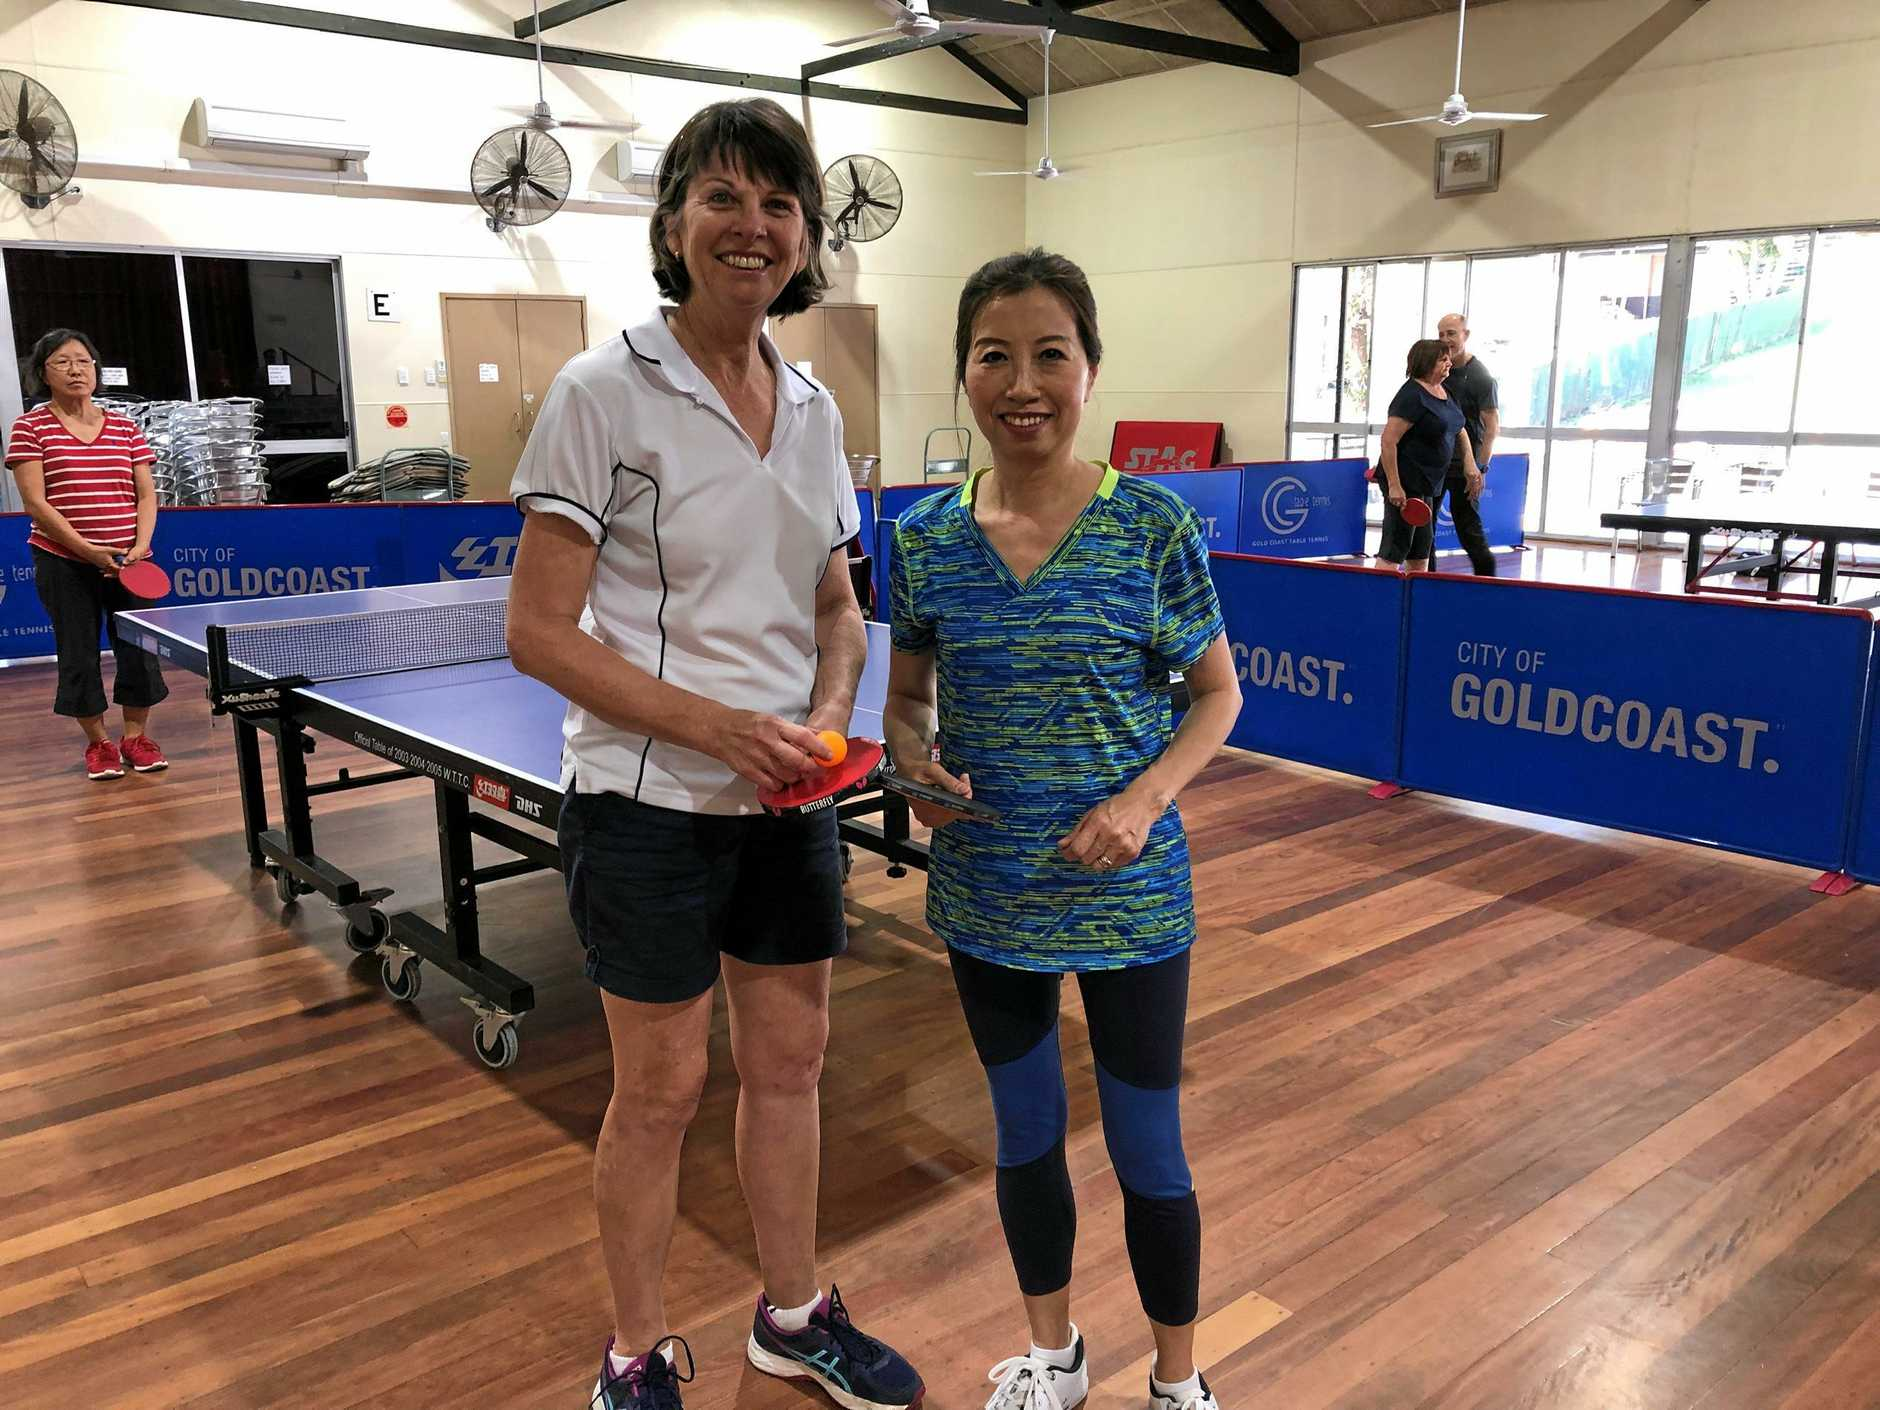 Table Tennis Instructors Hailo and Debbie we welcome you to the Burleigh/Miami Senior Citizens Club located at 40 Matilda St. Burleigh.